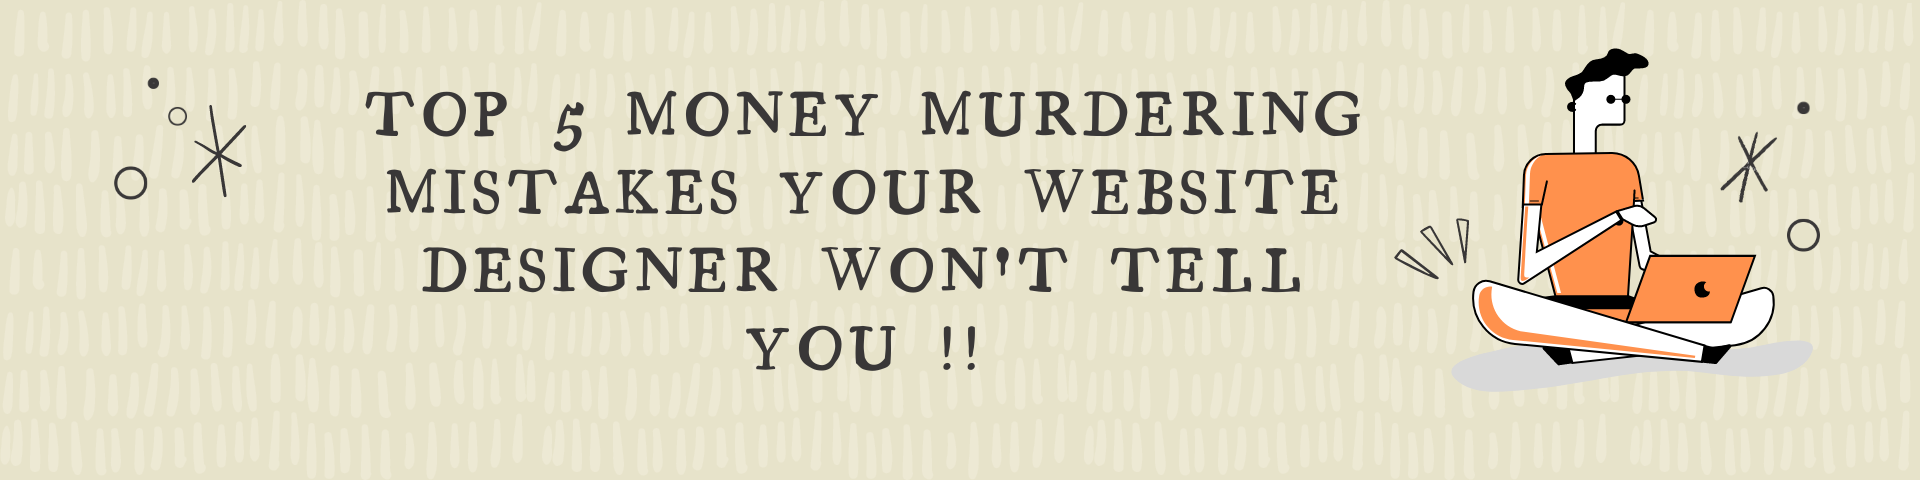 Top 5 Money Murdering Mistakes Your Website Designer Won't Tell You !!